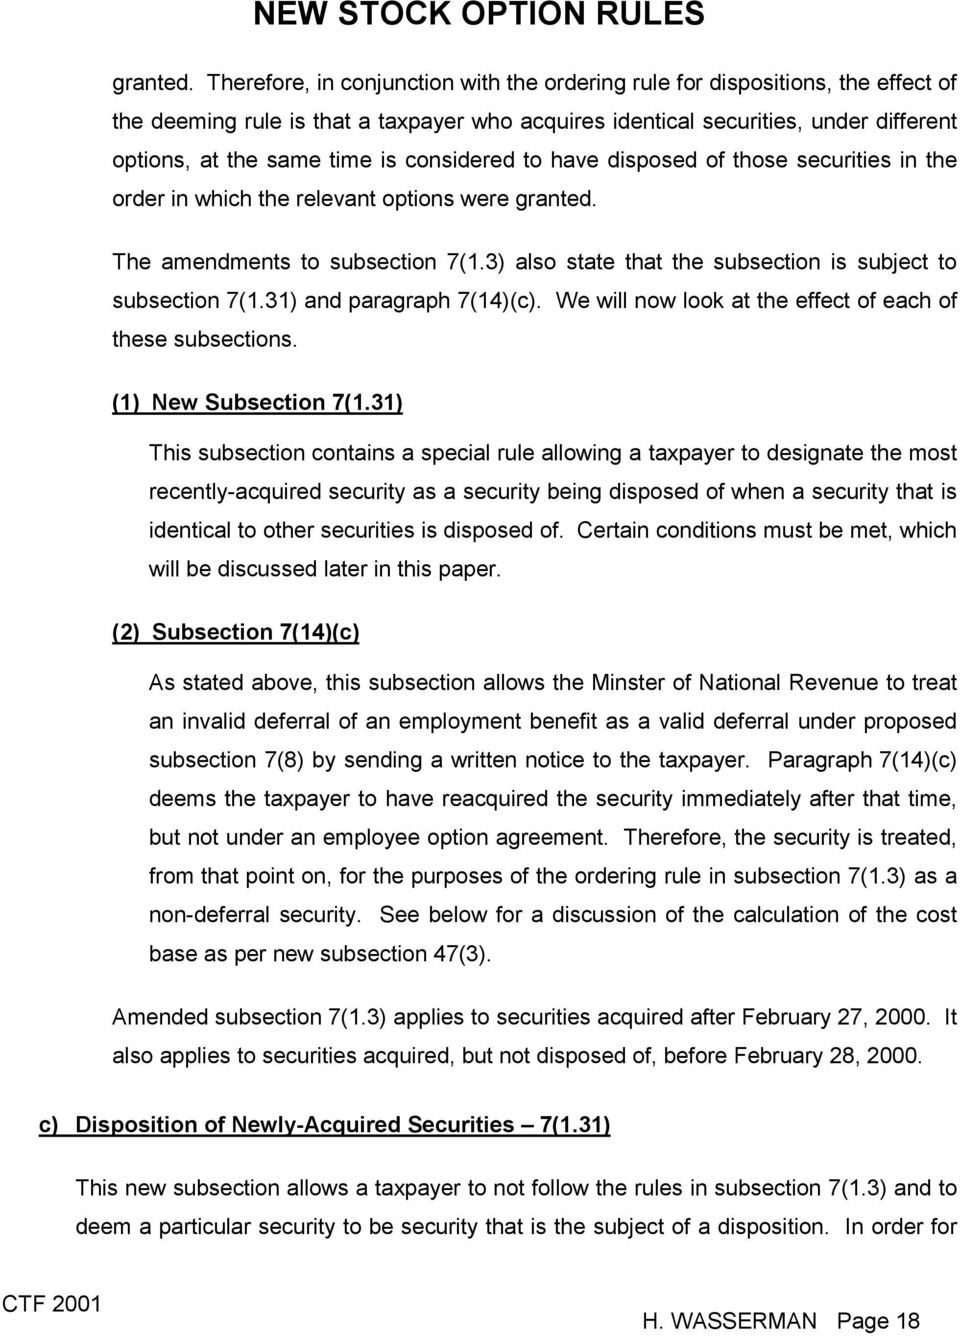 considered to have disposed of those securities in the order in which the relevant options were  The amendments to subsection 7(1.3) also state that the subsection is subject to subsection 7(1.